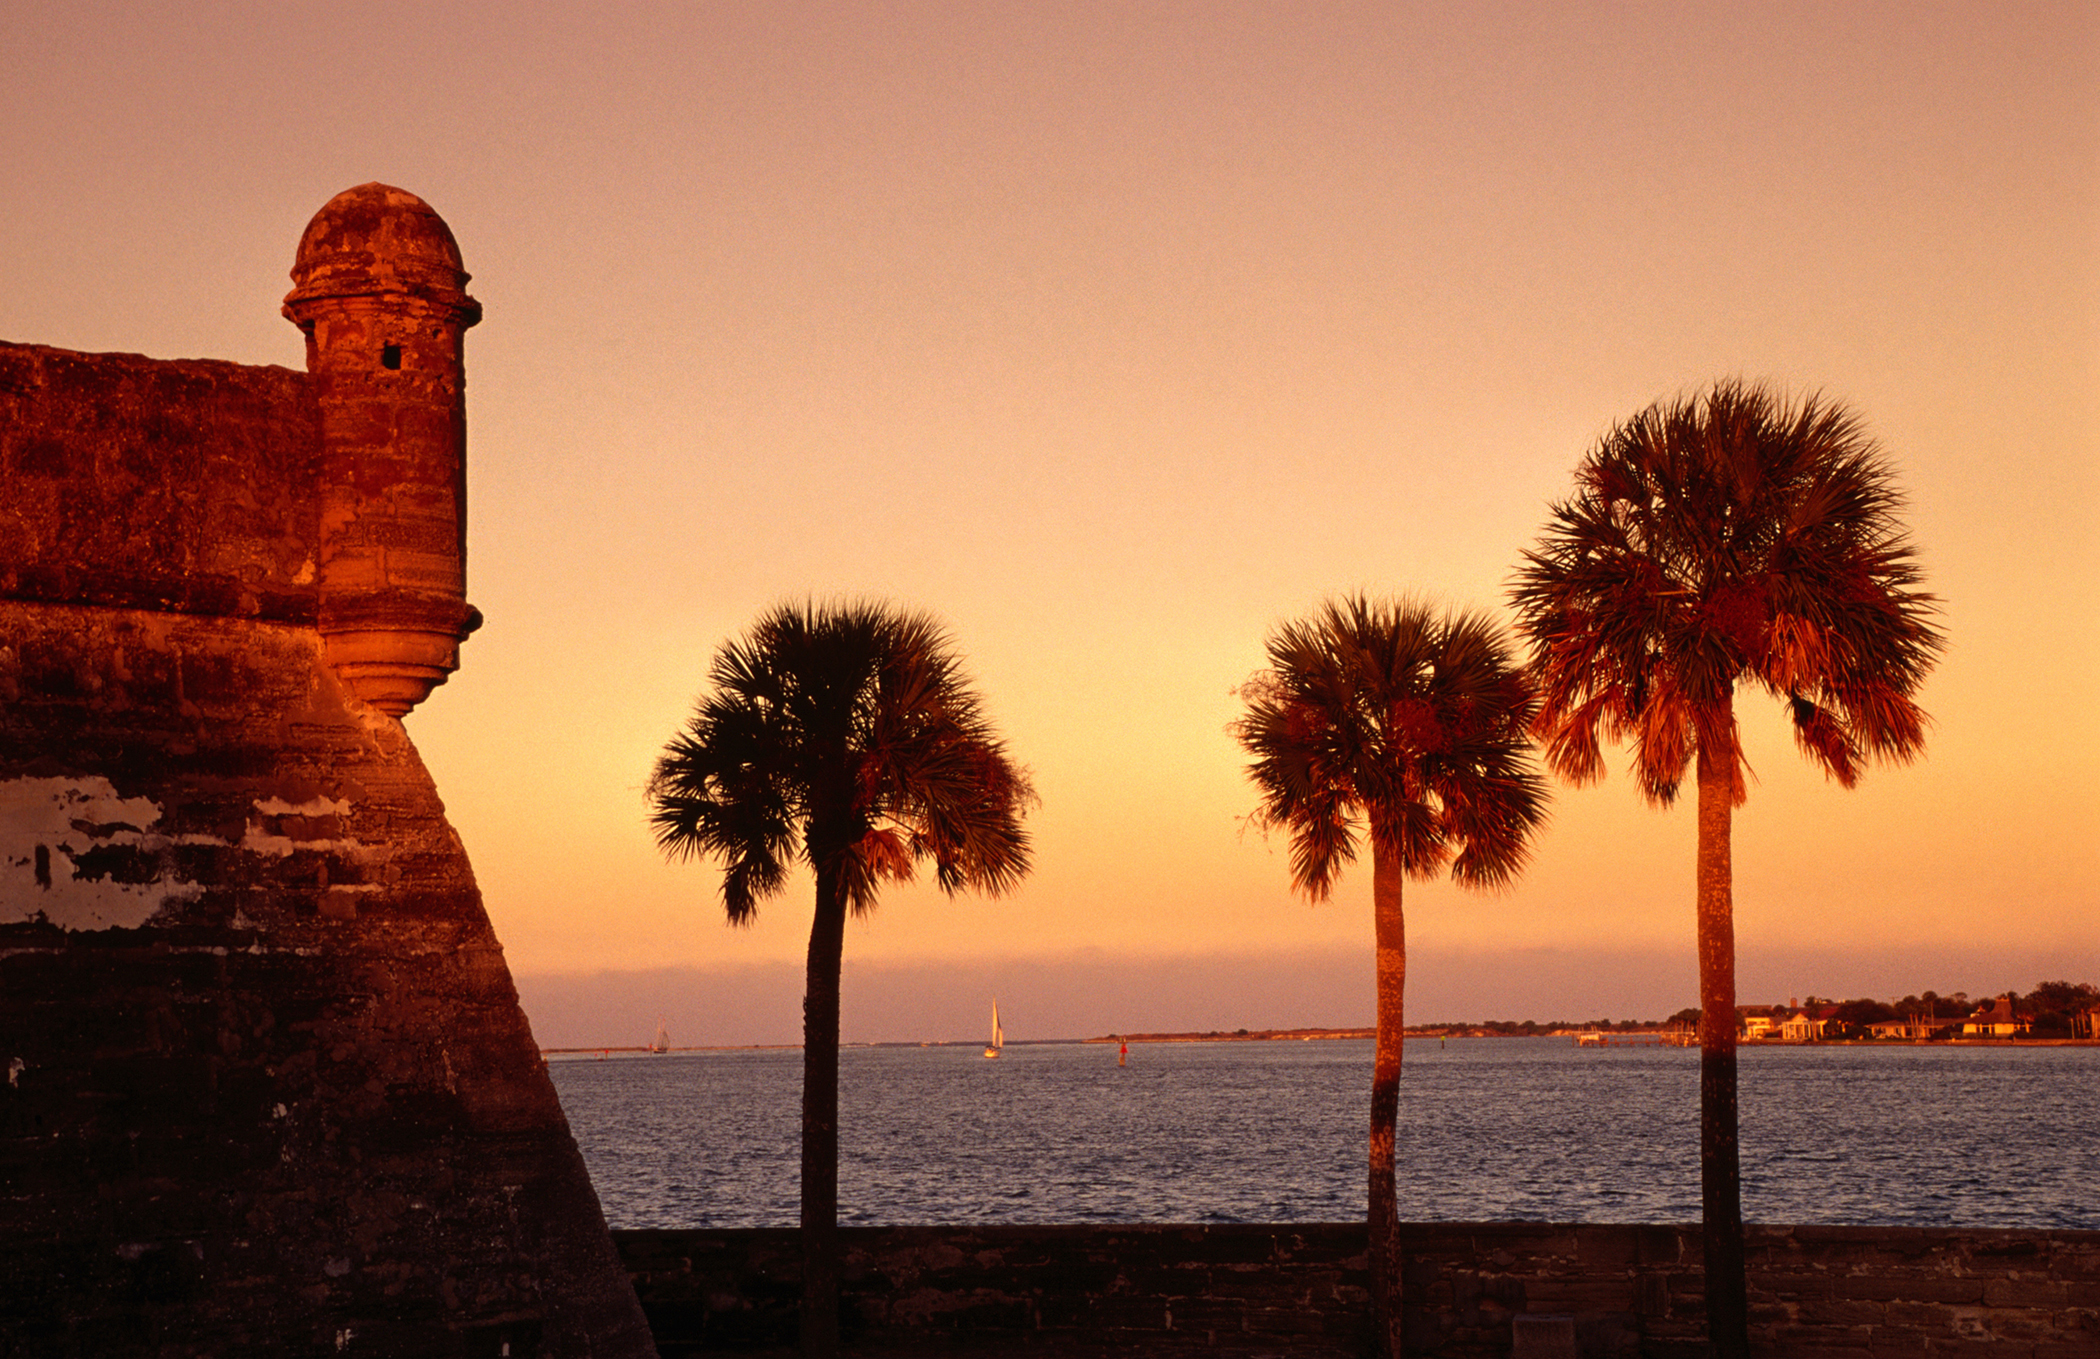 10.St Augustine, Fla.:Floridians, including those in the coastal town of St. Augustine, die less frequently from heart disease compared to other cities and states.